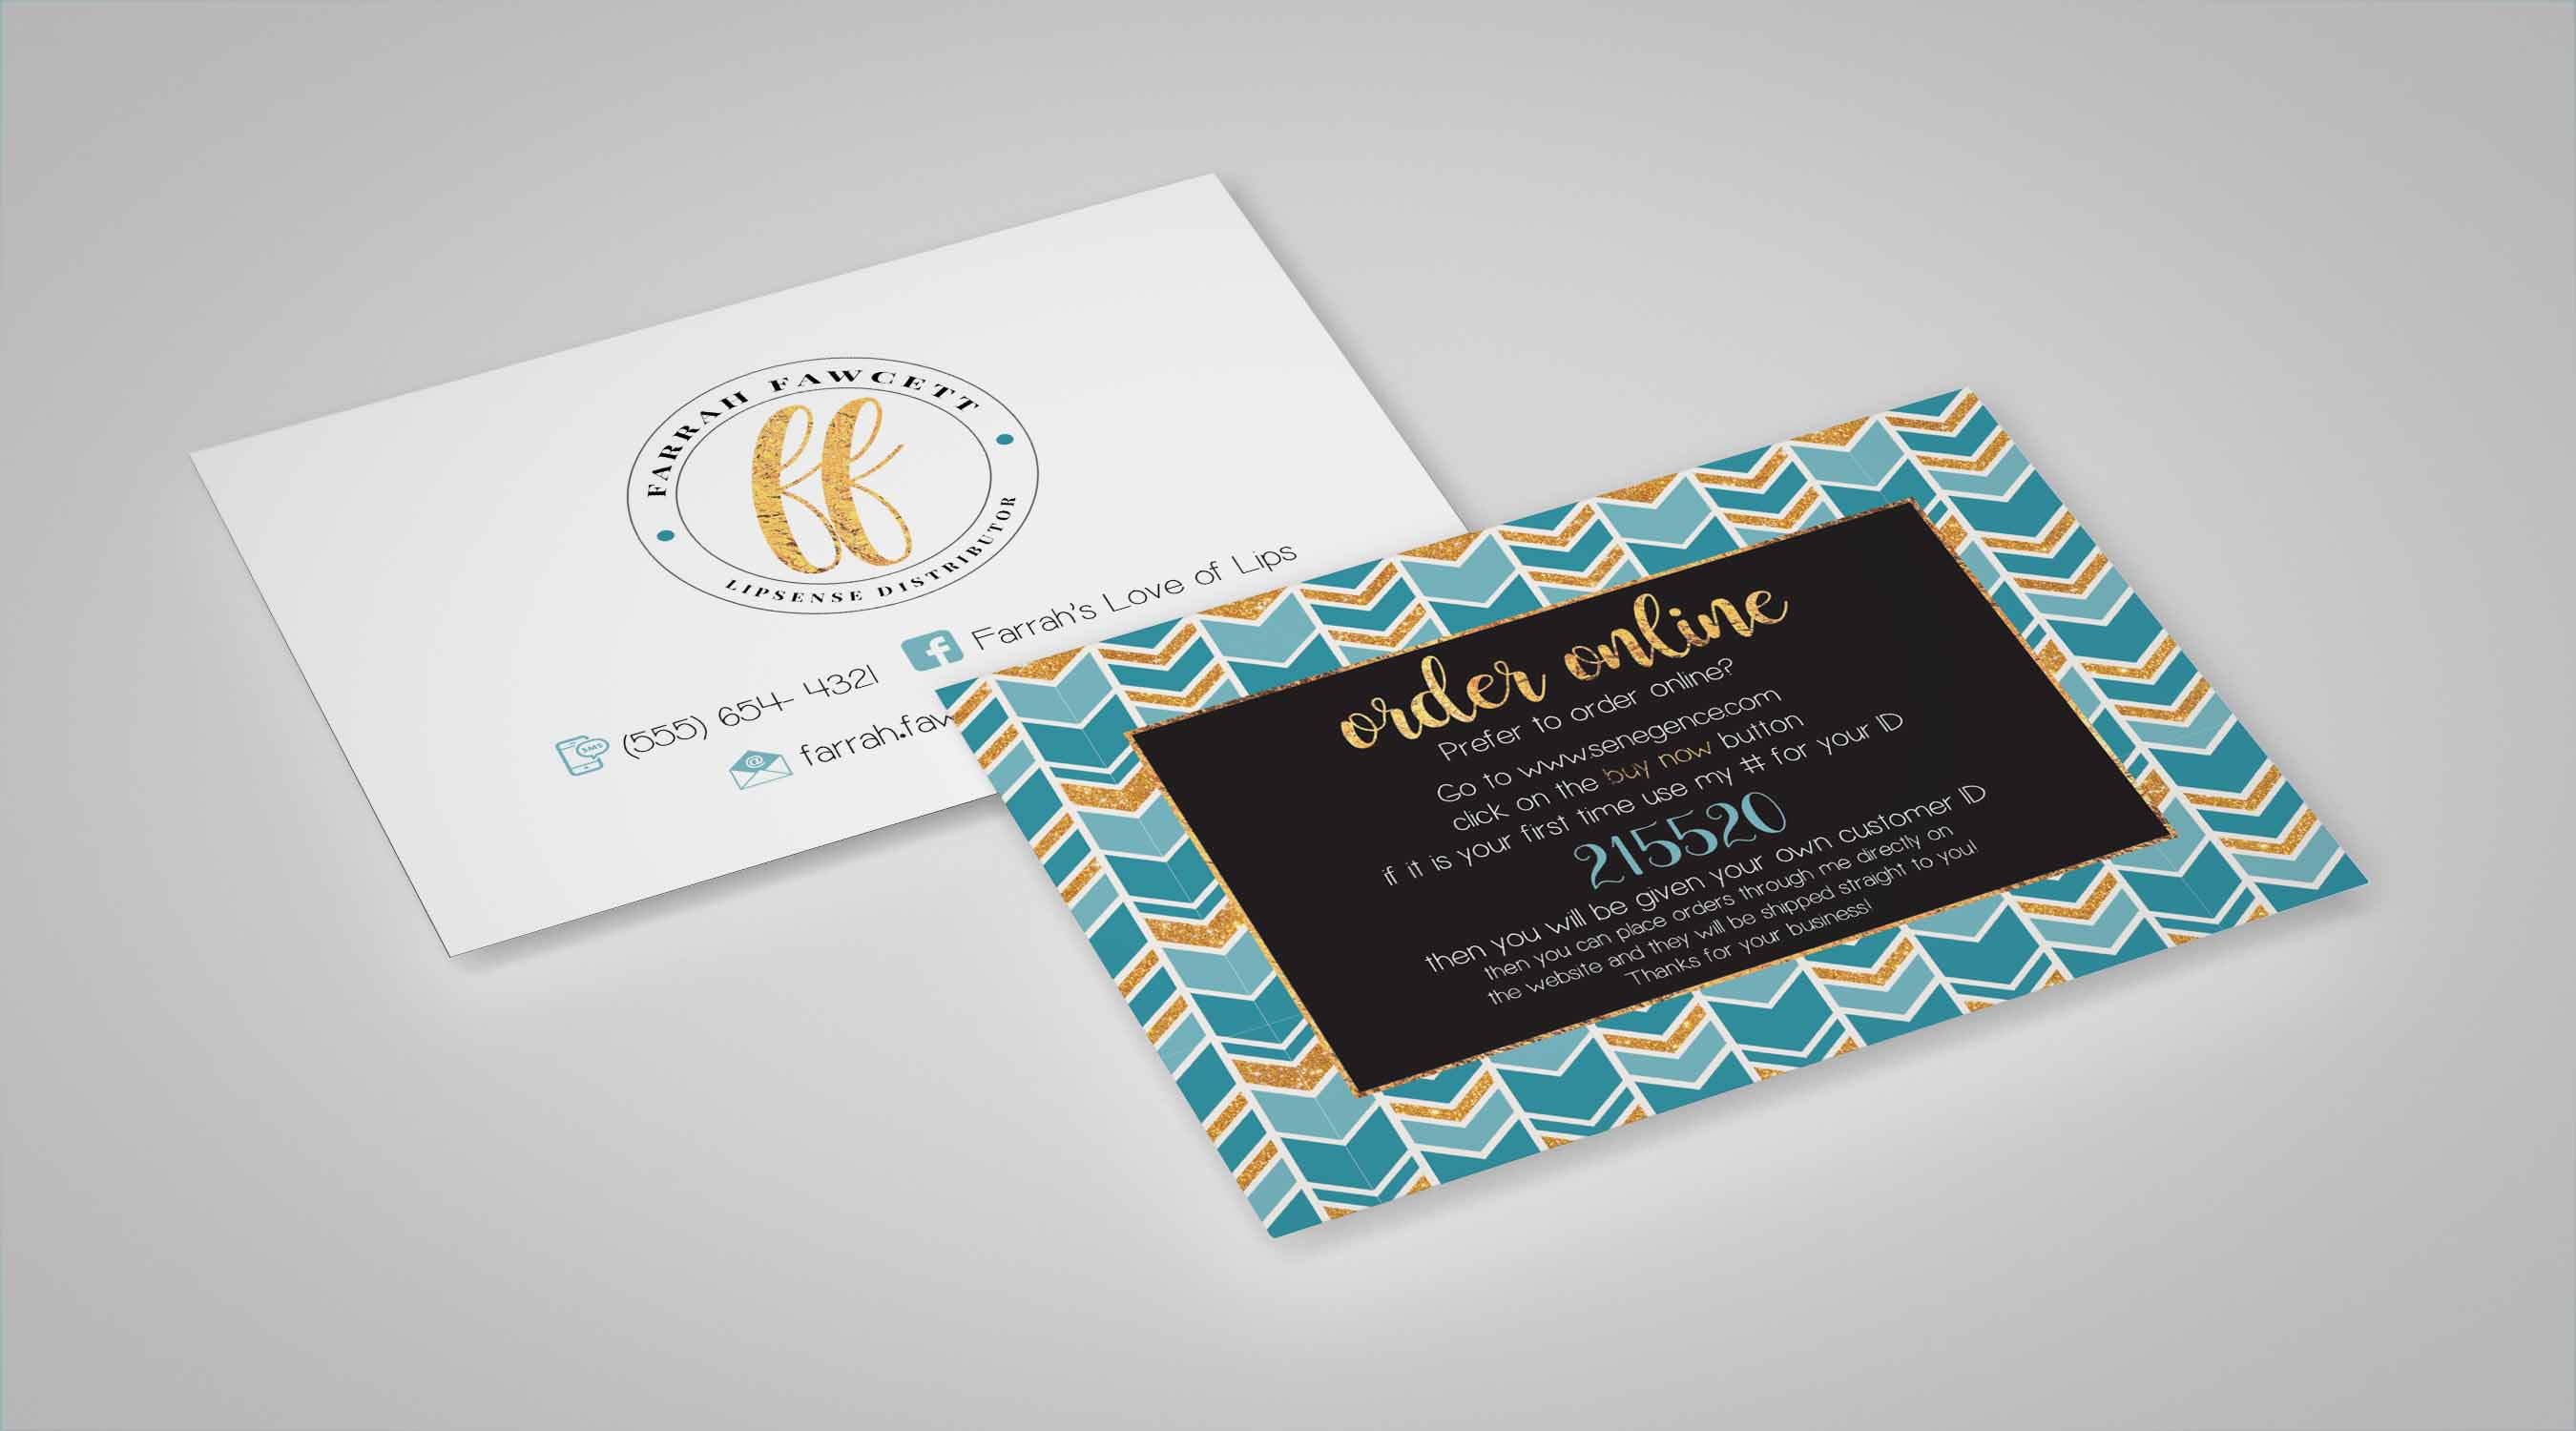 New photos of order business cards online cheap business for Cheapest business cards online